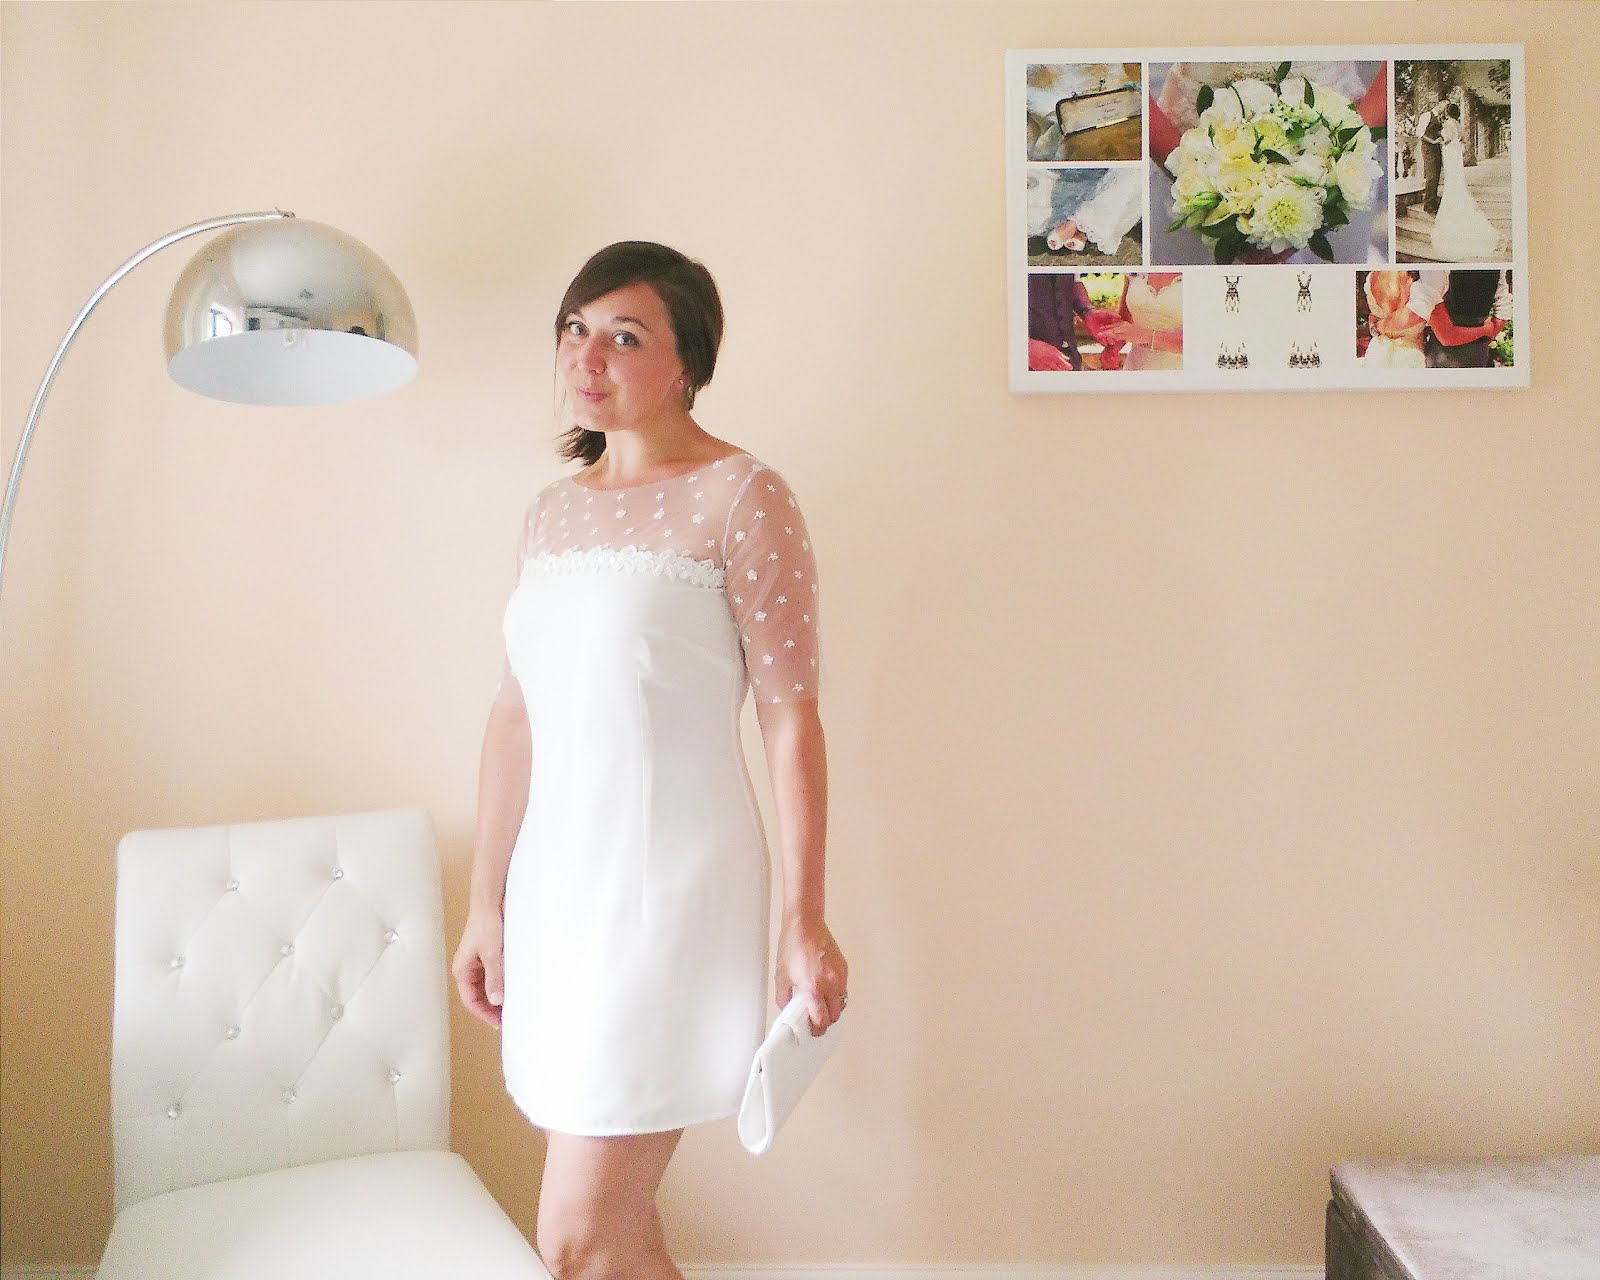 Sew your own short wedding or bridesmaid dress